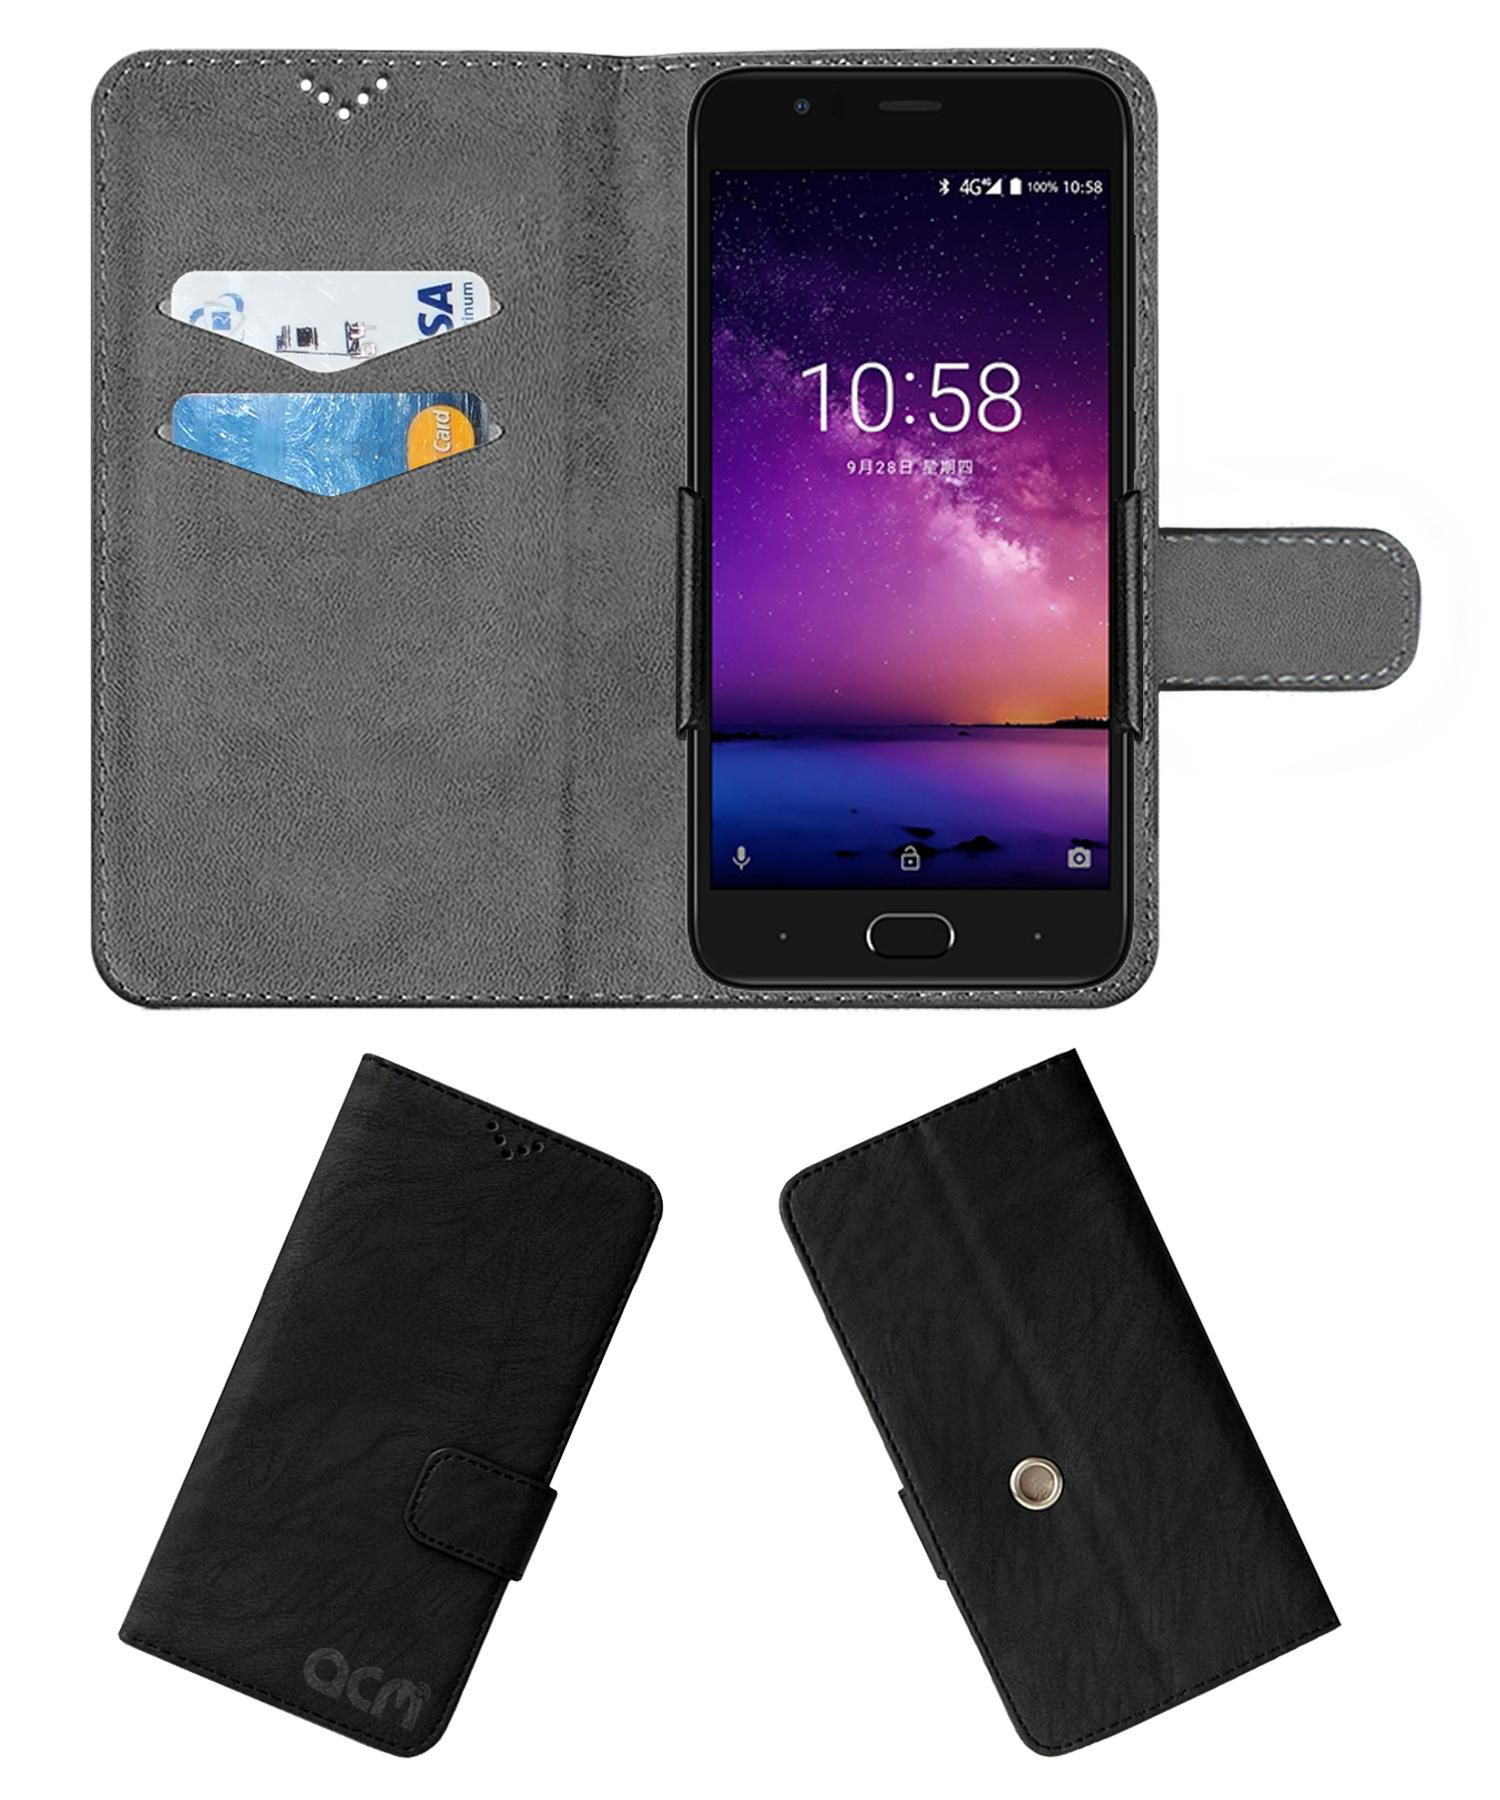 InFocus A3 Flip Cover by ACM - Black Clip holder to hold your mobile securely